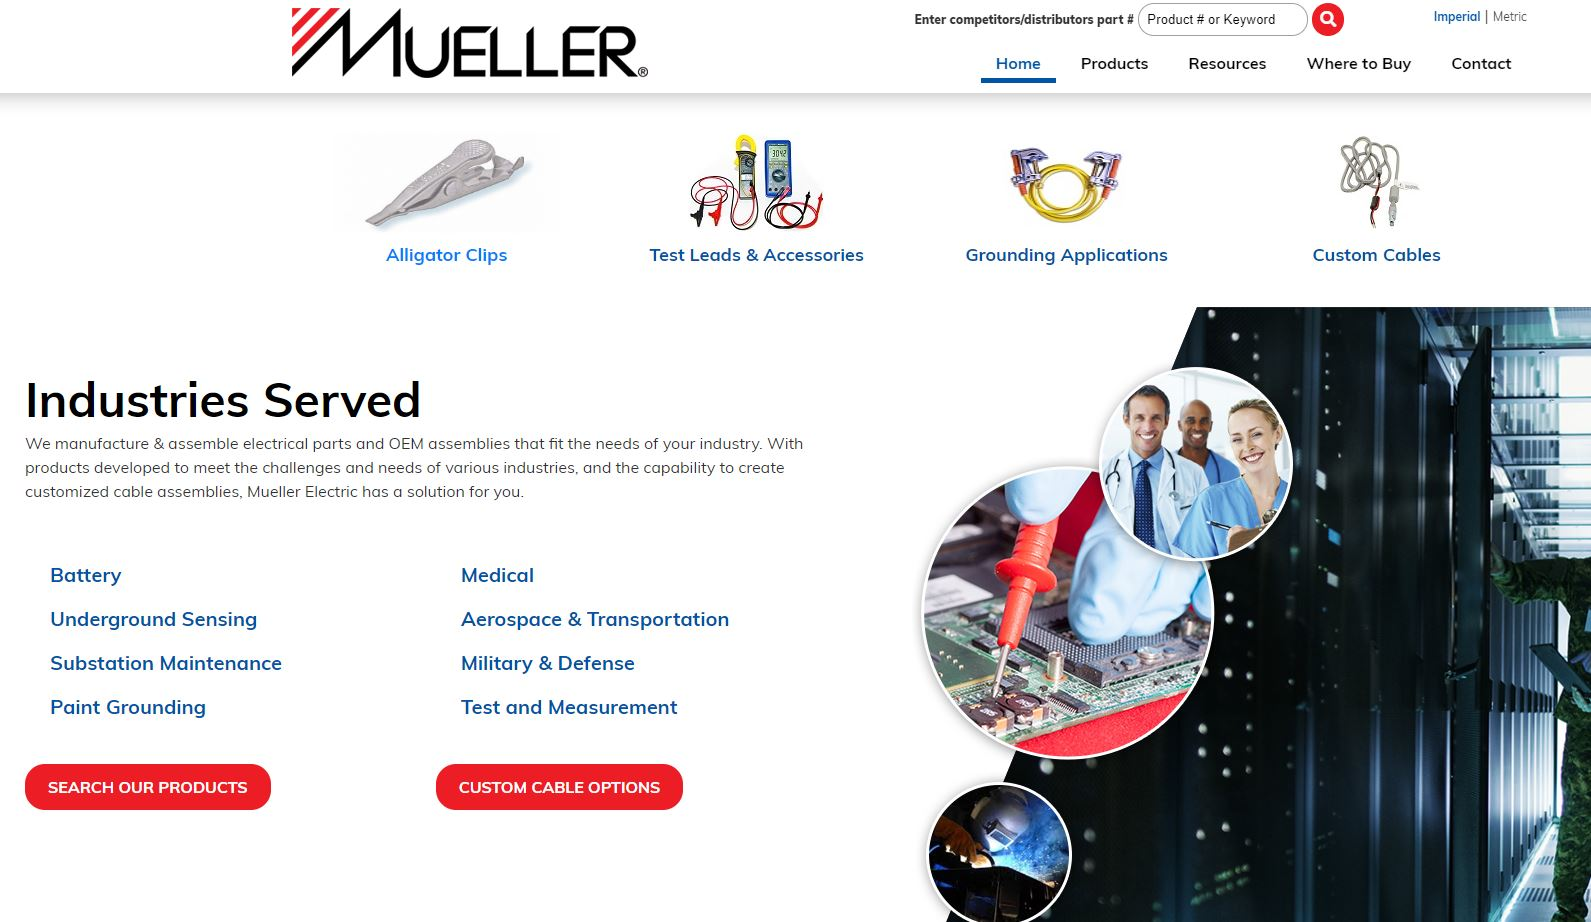 mueller website products page